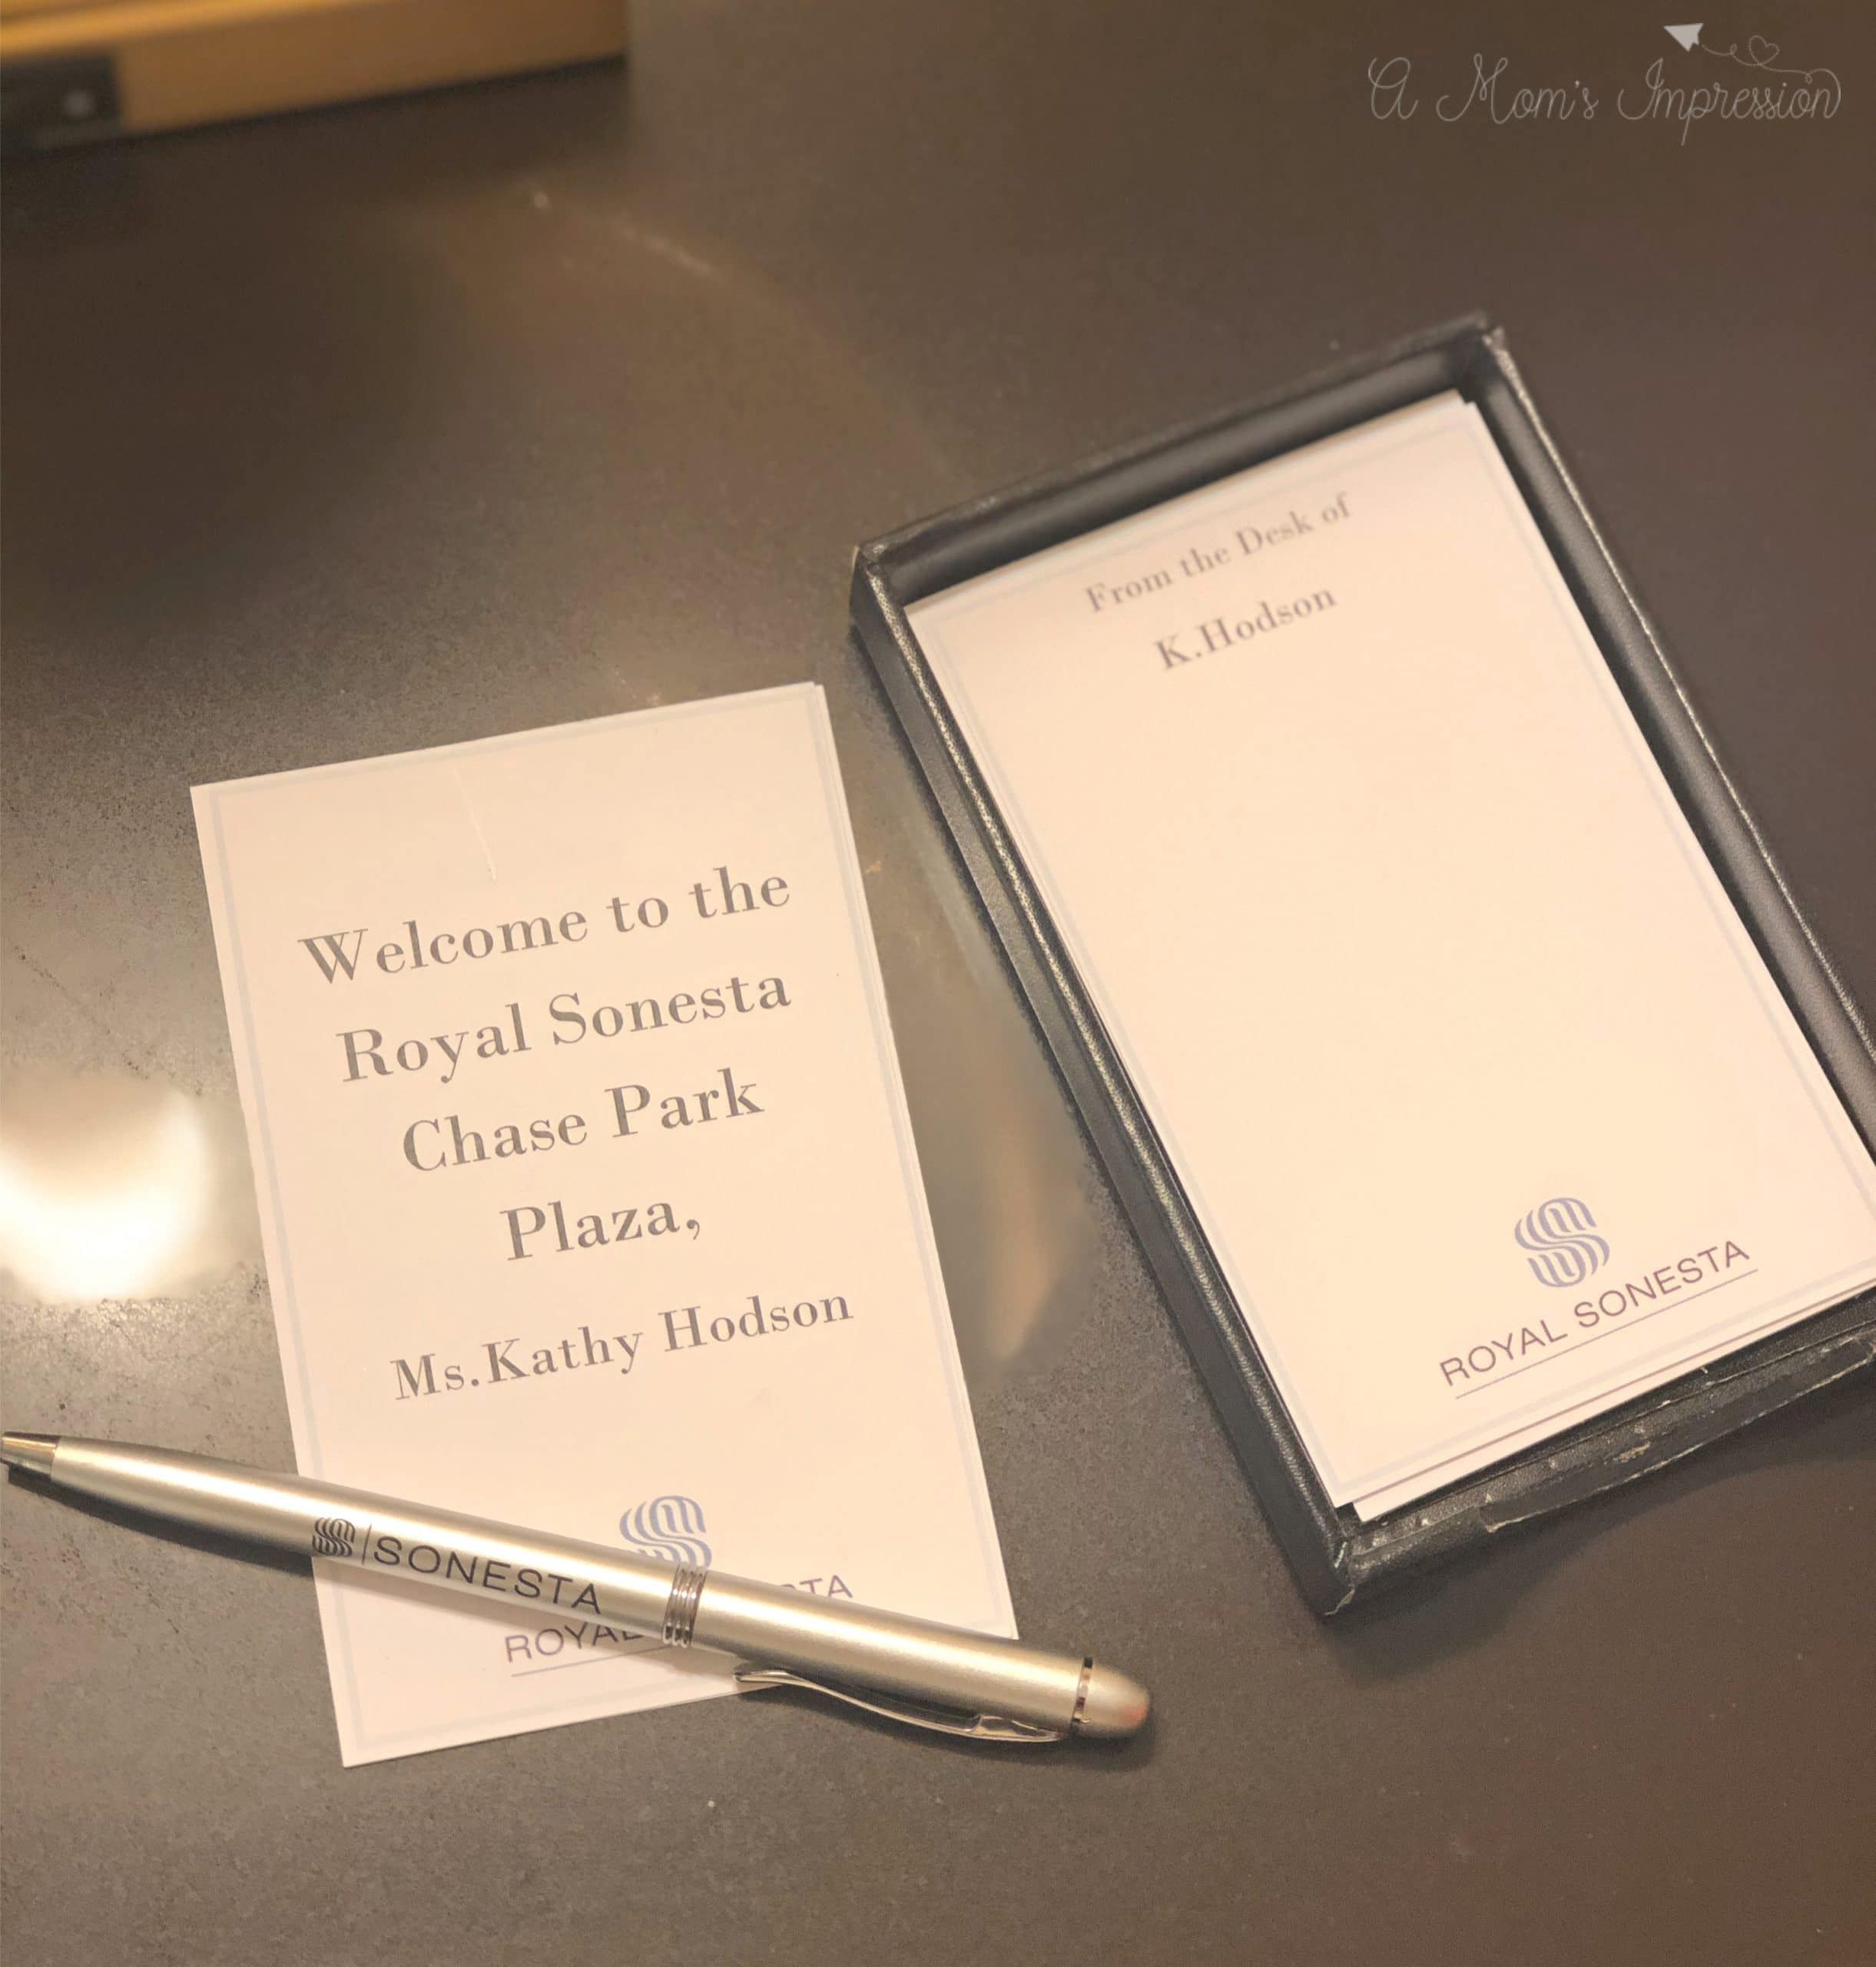 St. Louis Chase Hotel Stationary